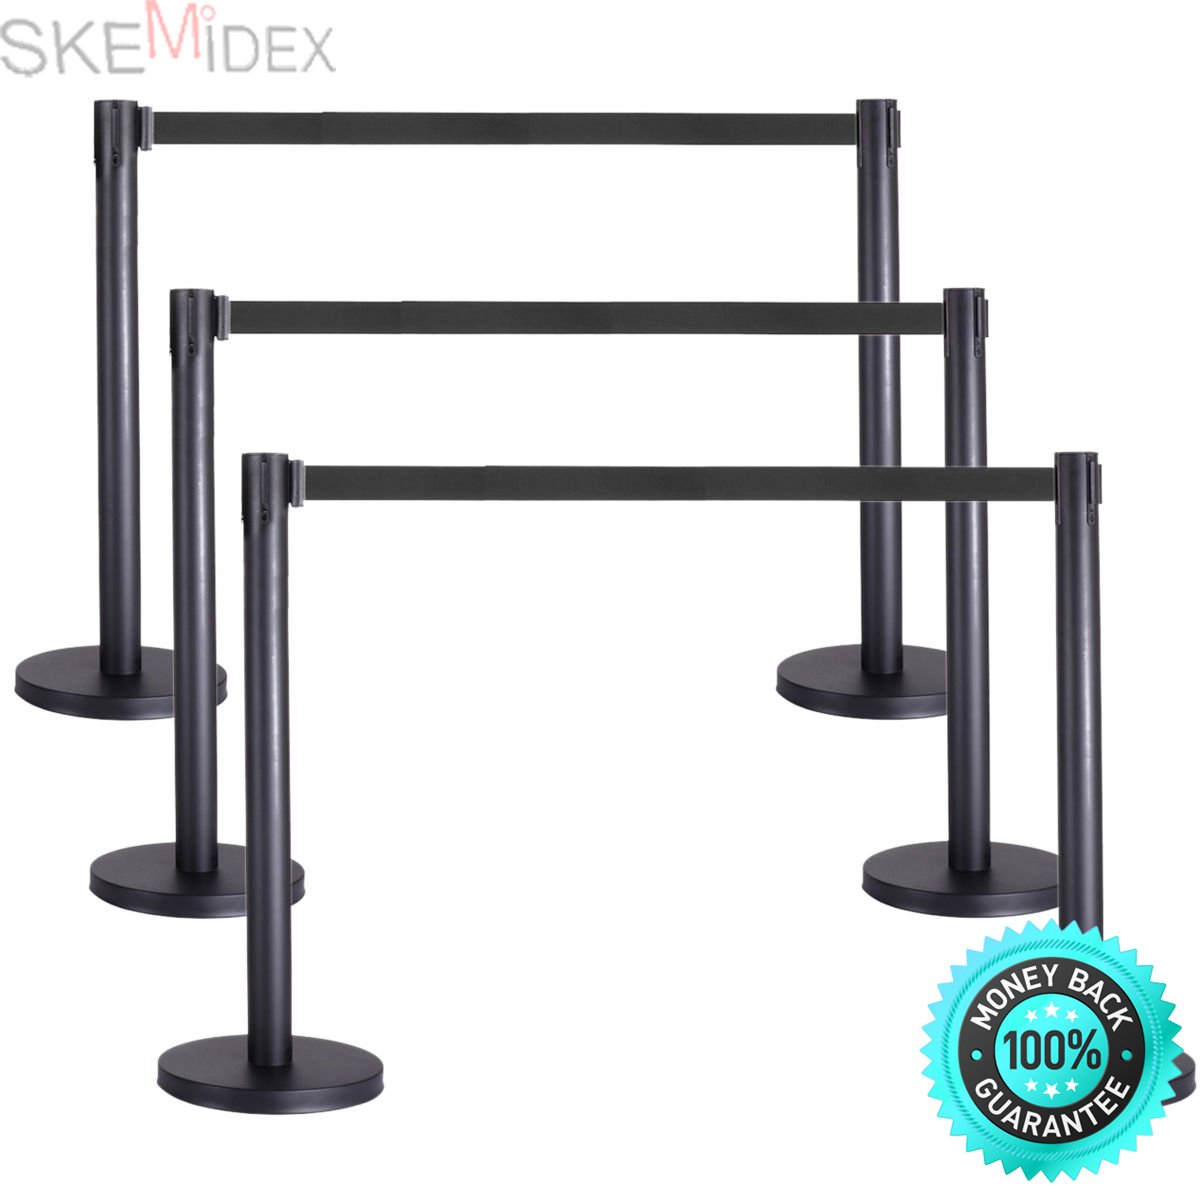 SKEMiDEX---6pcs Retractable Belt Stanchion, 3 Sets, Black Belt, Crowd Control Barrier. Retractable belt stanchions are widely applied in shopping centre, hotel, bank, hospital, station, airport